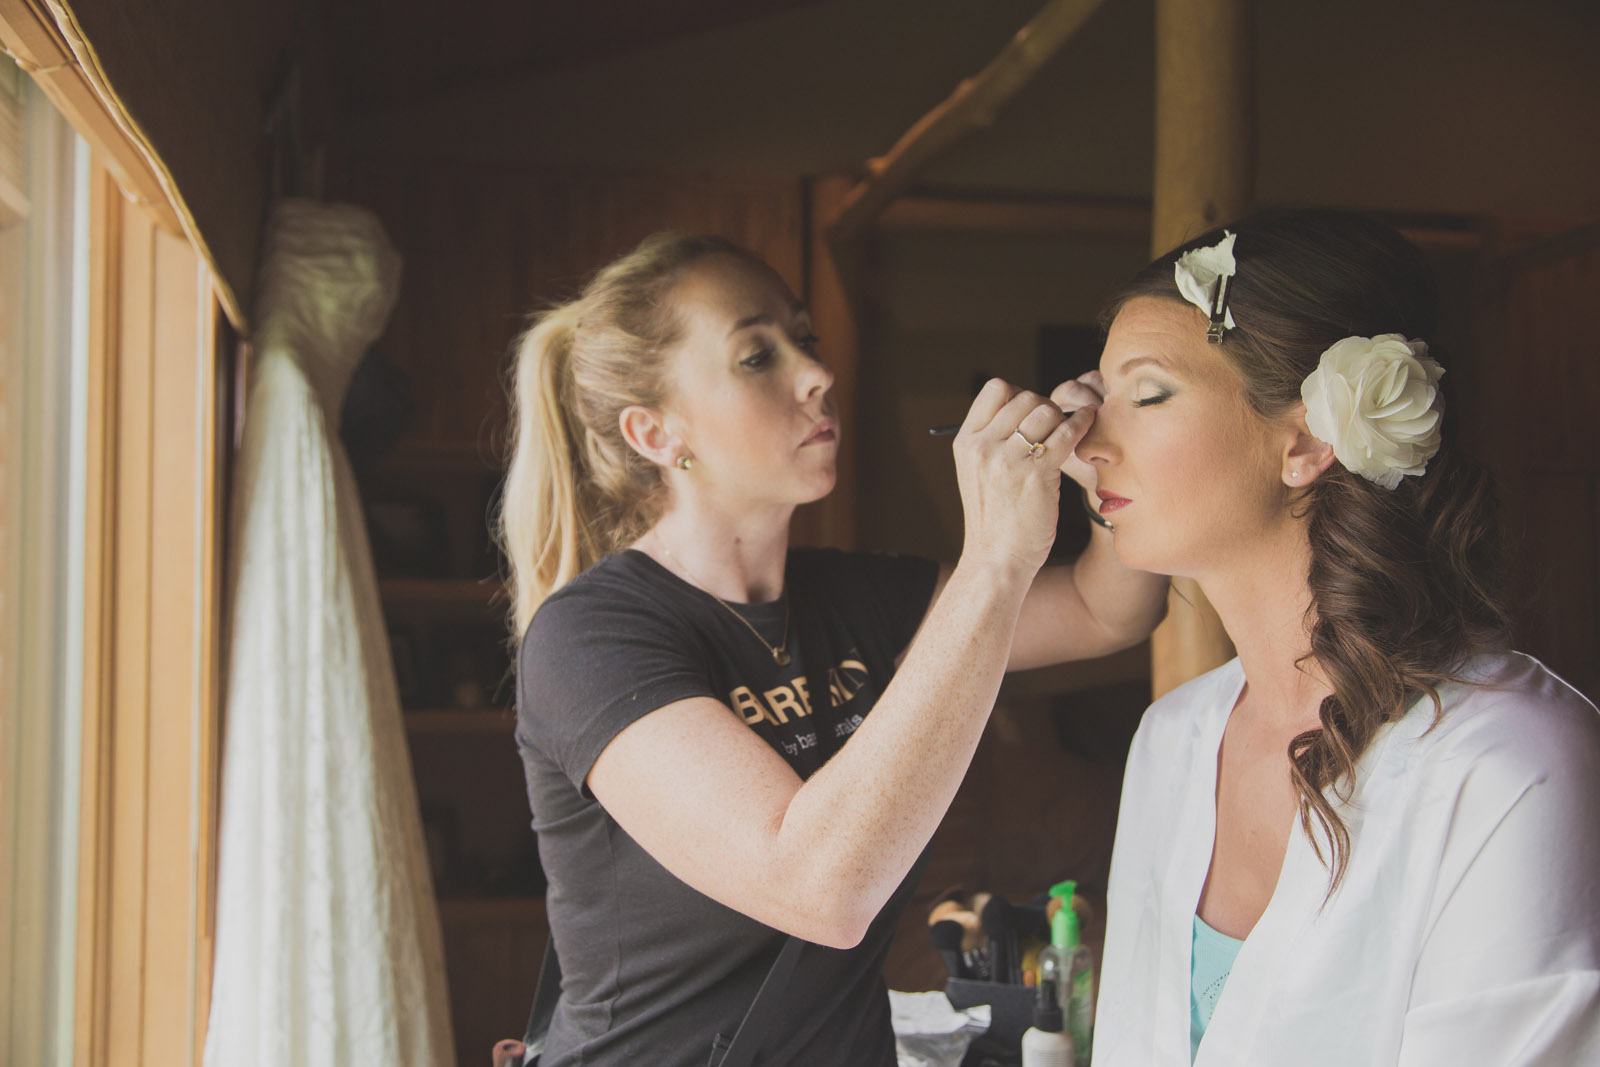 006-wedding-make-up-bride-window-flower-preparation